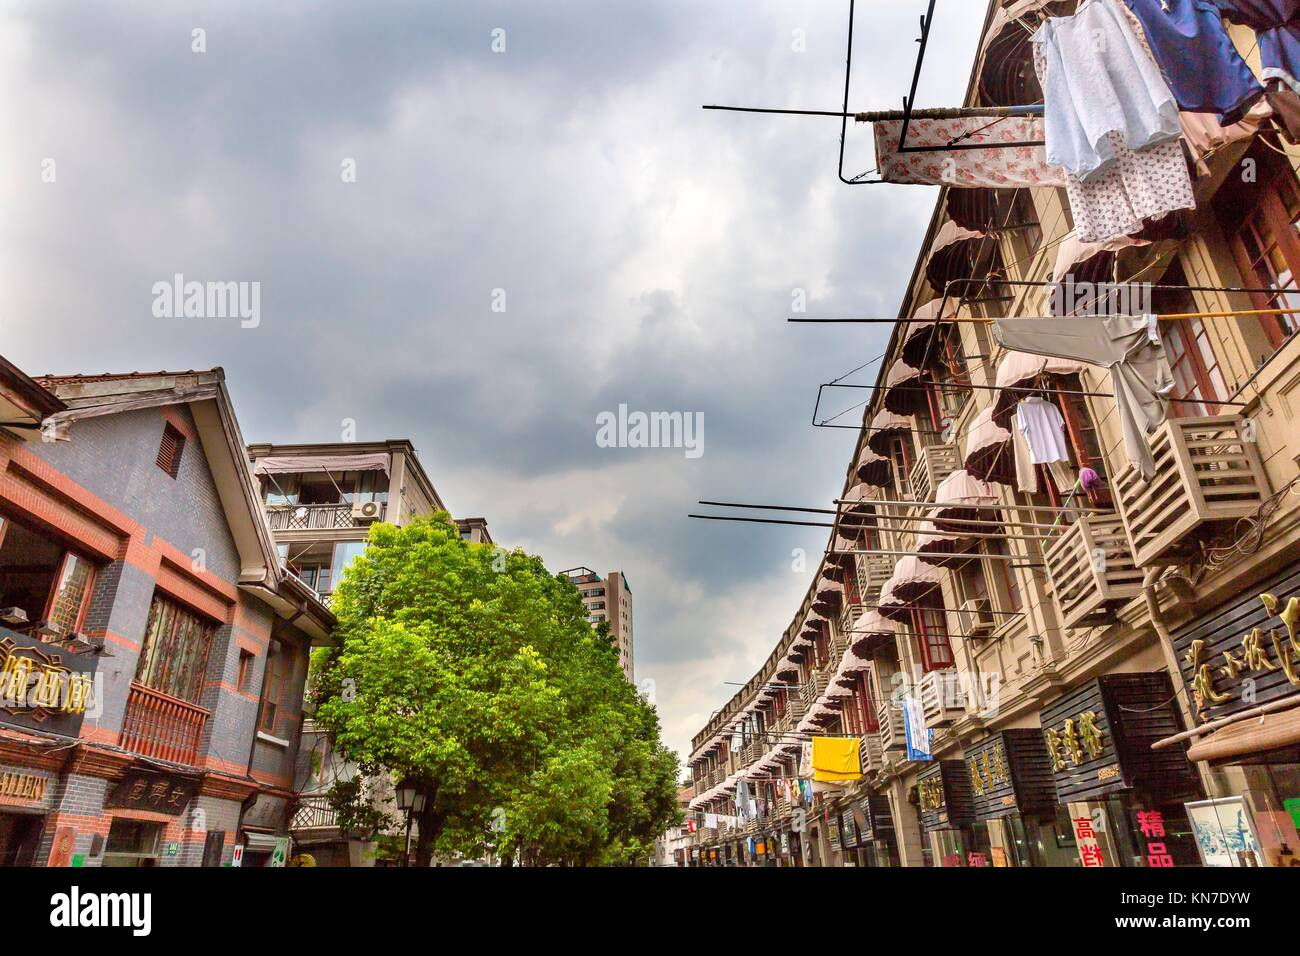 Old Duolon Cultural Road Hongkou District Shanghai China. Old Shanghai Houses and Street built during revolutionary - Stock Image